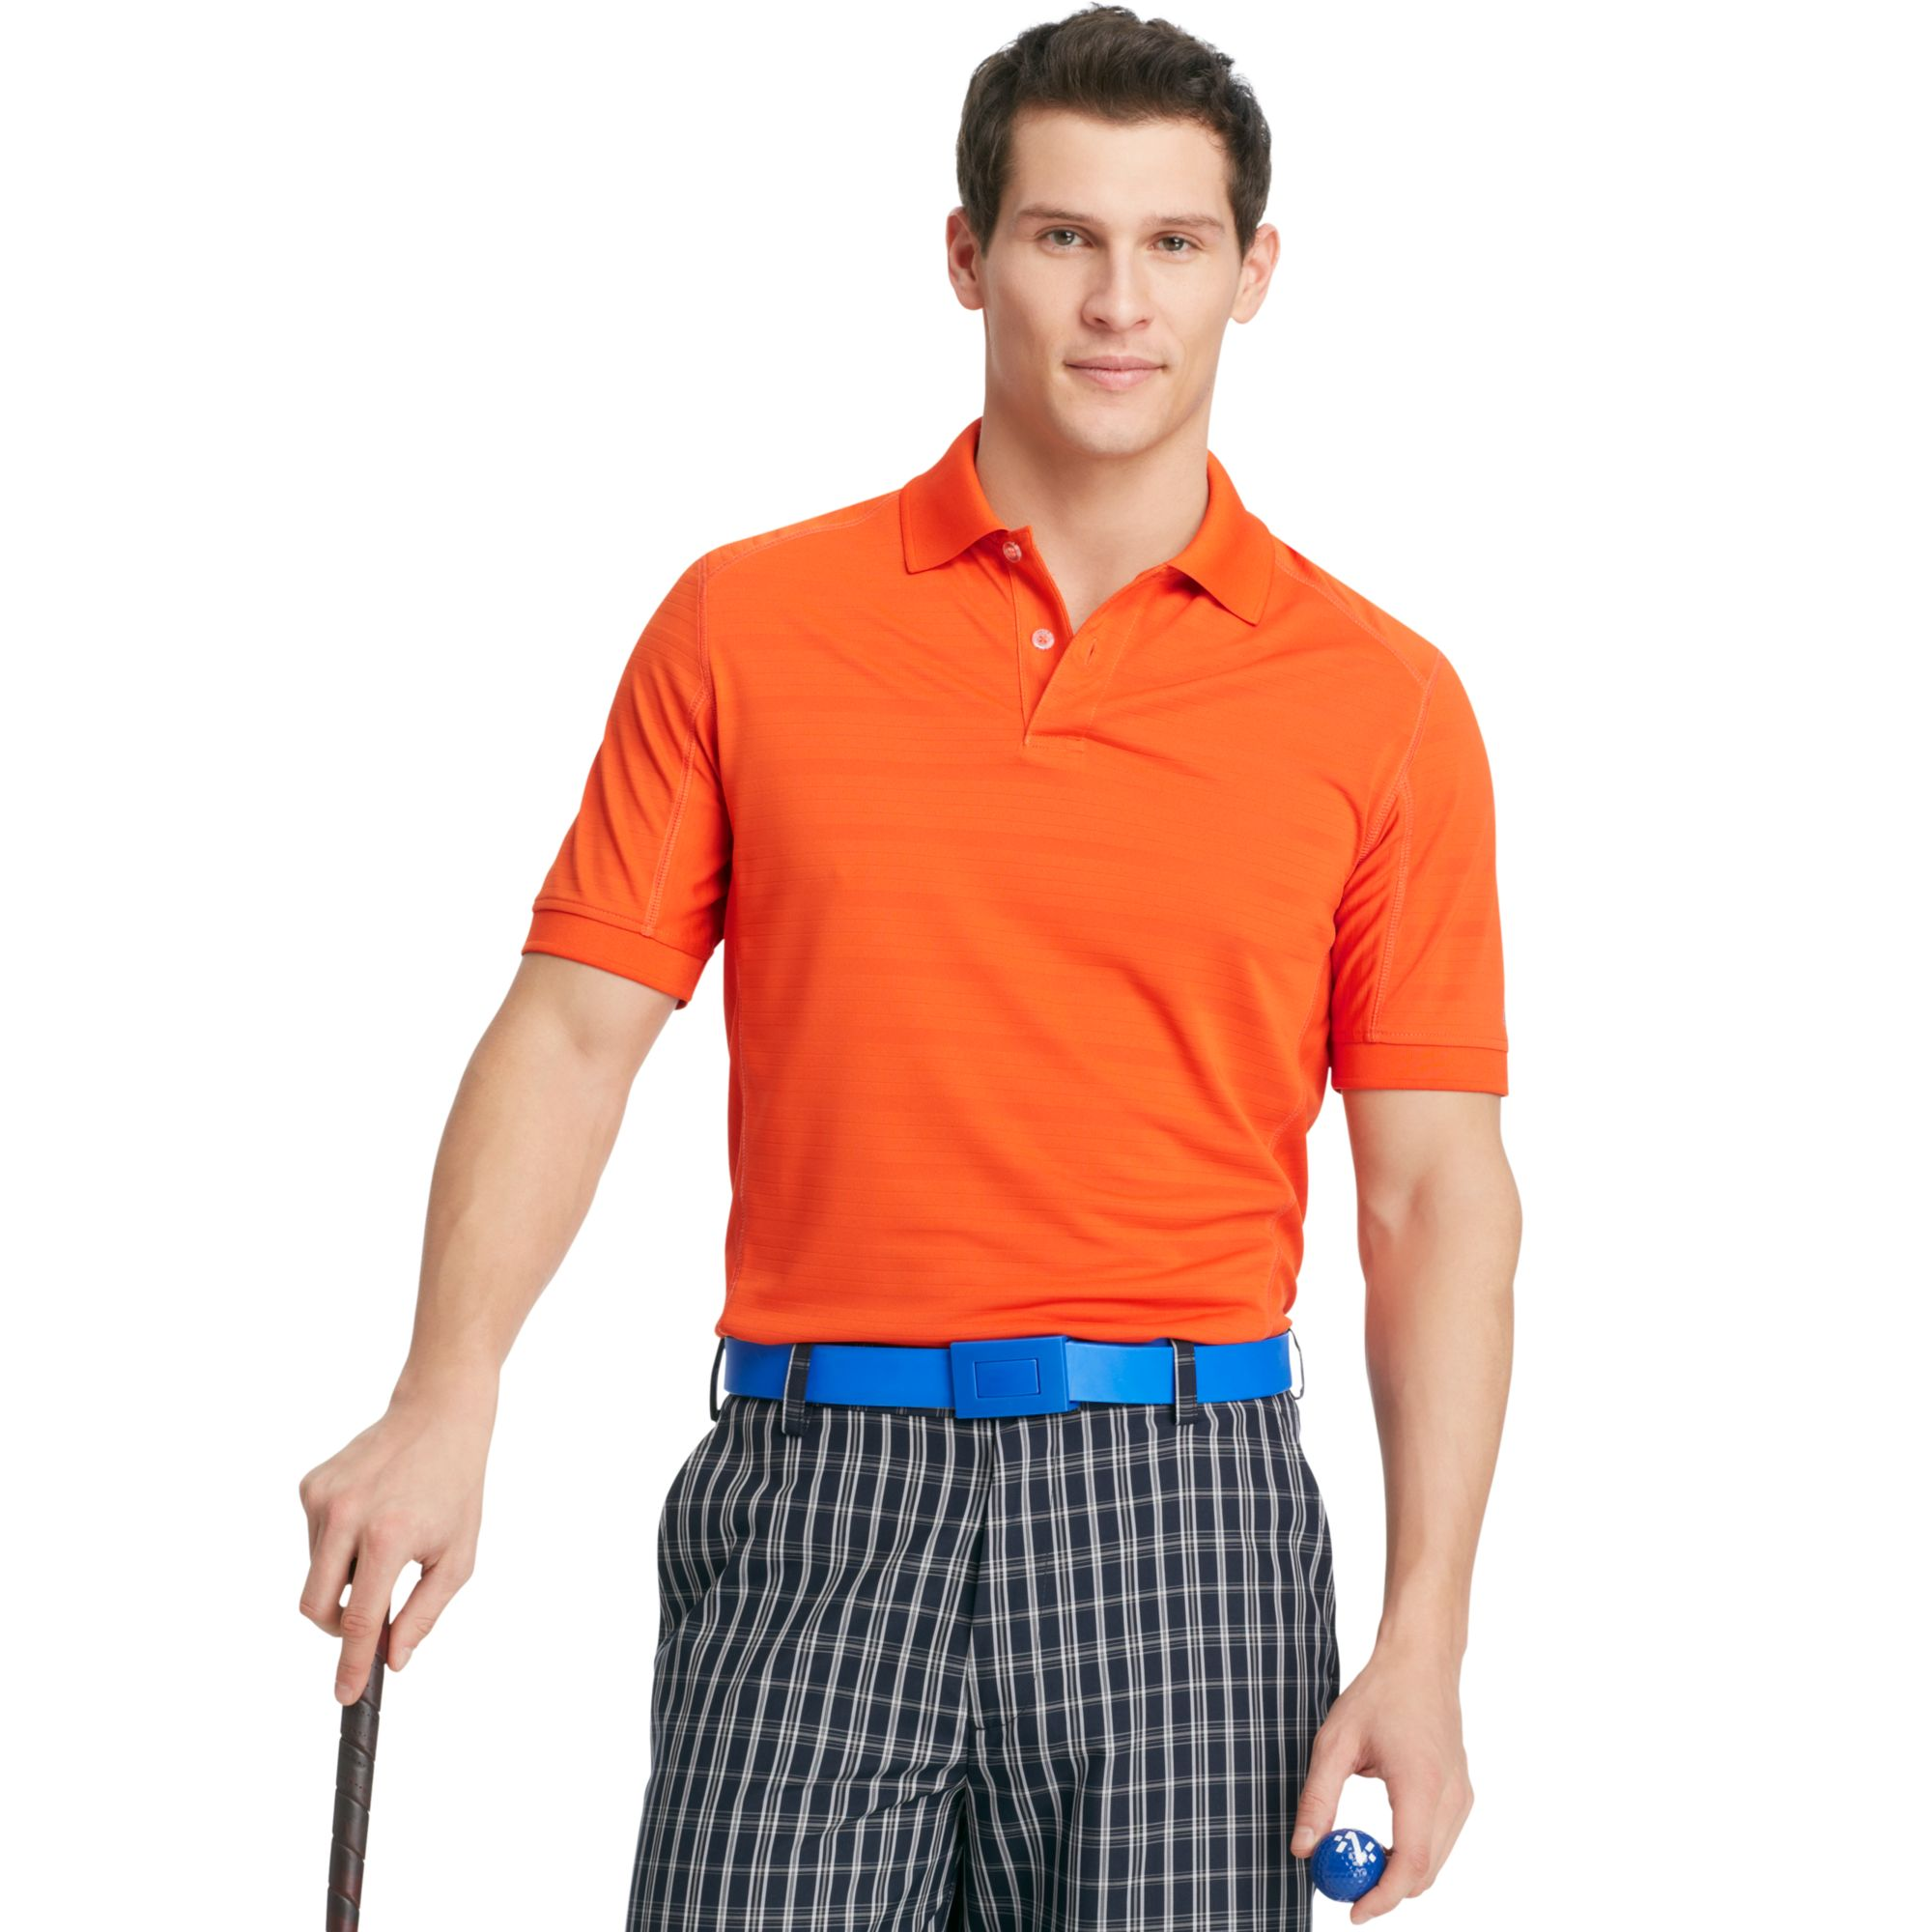 Slim Fit Golf Shirts Our T Shirt